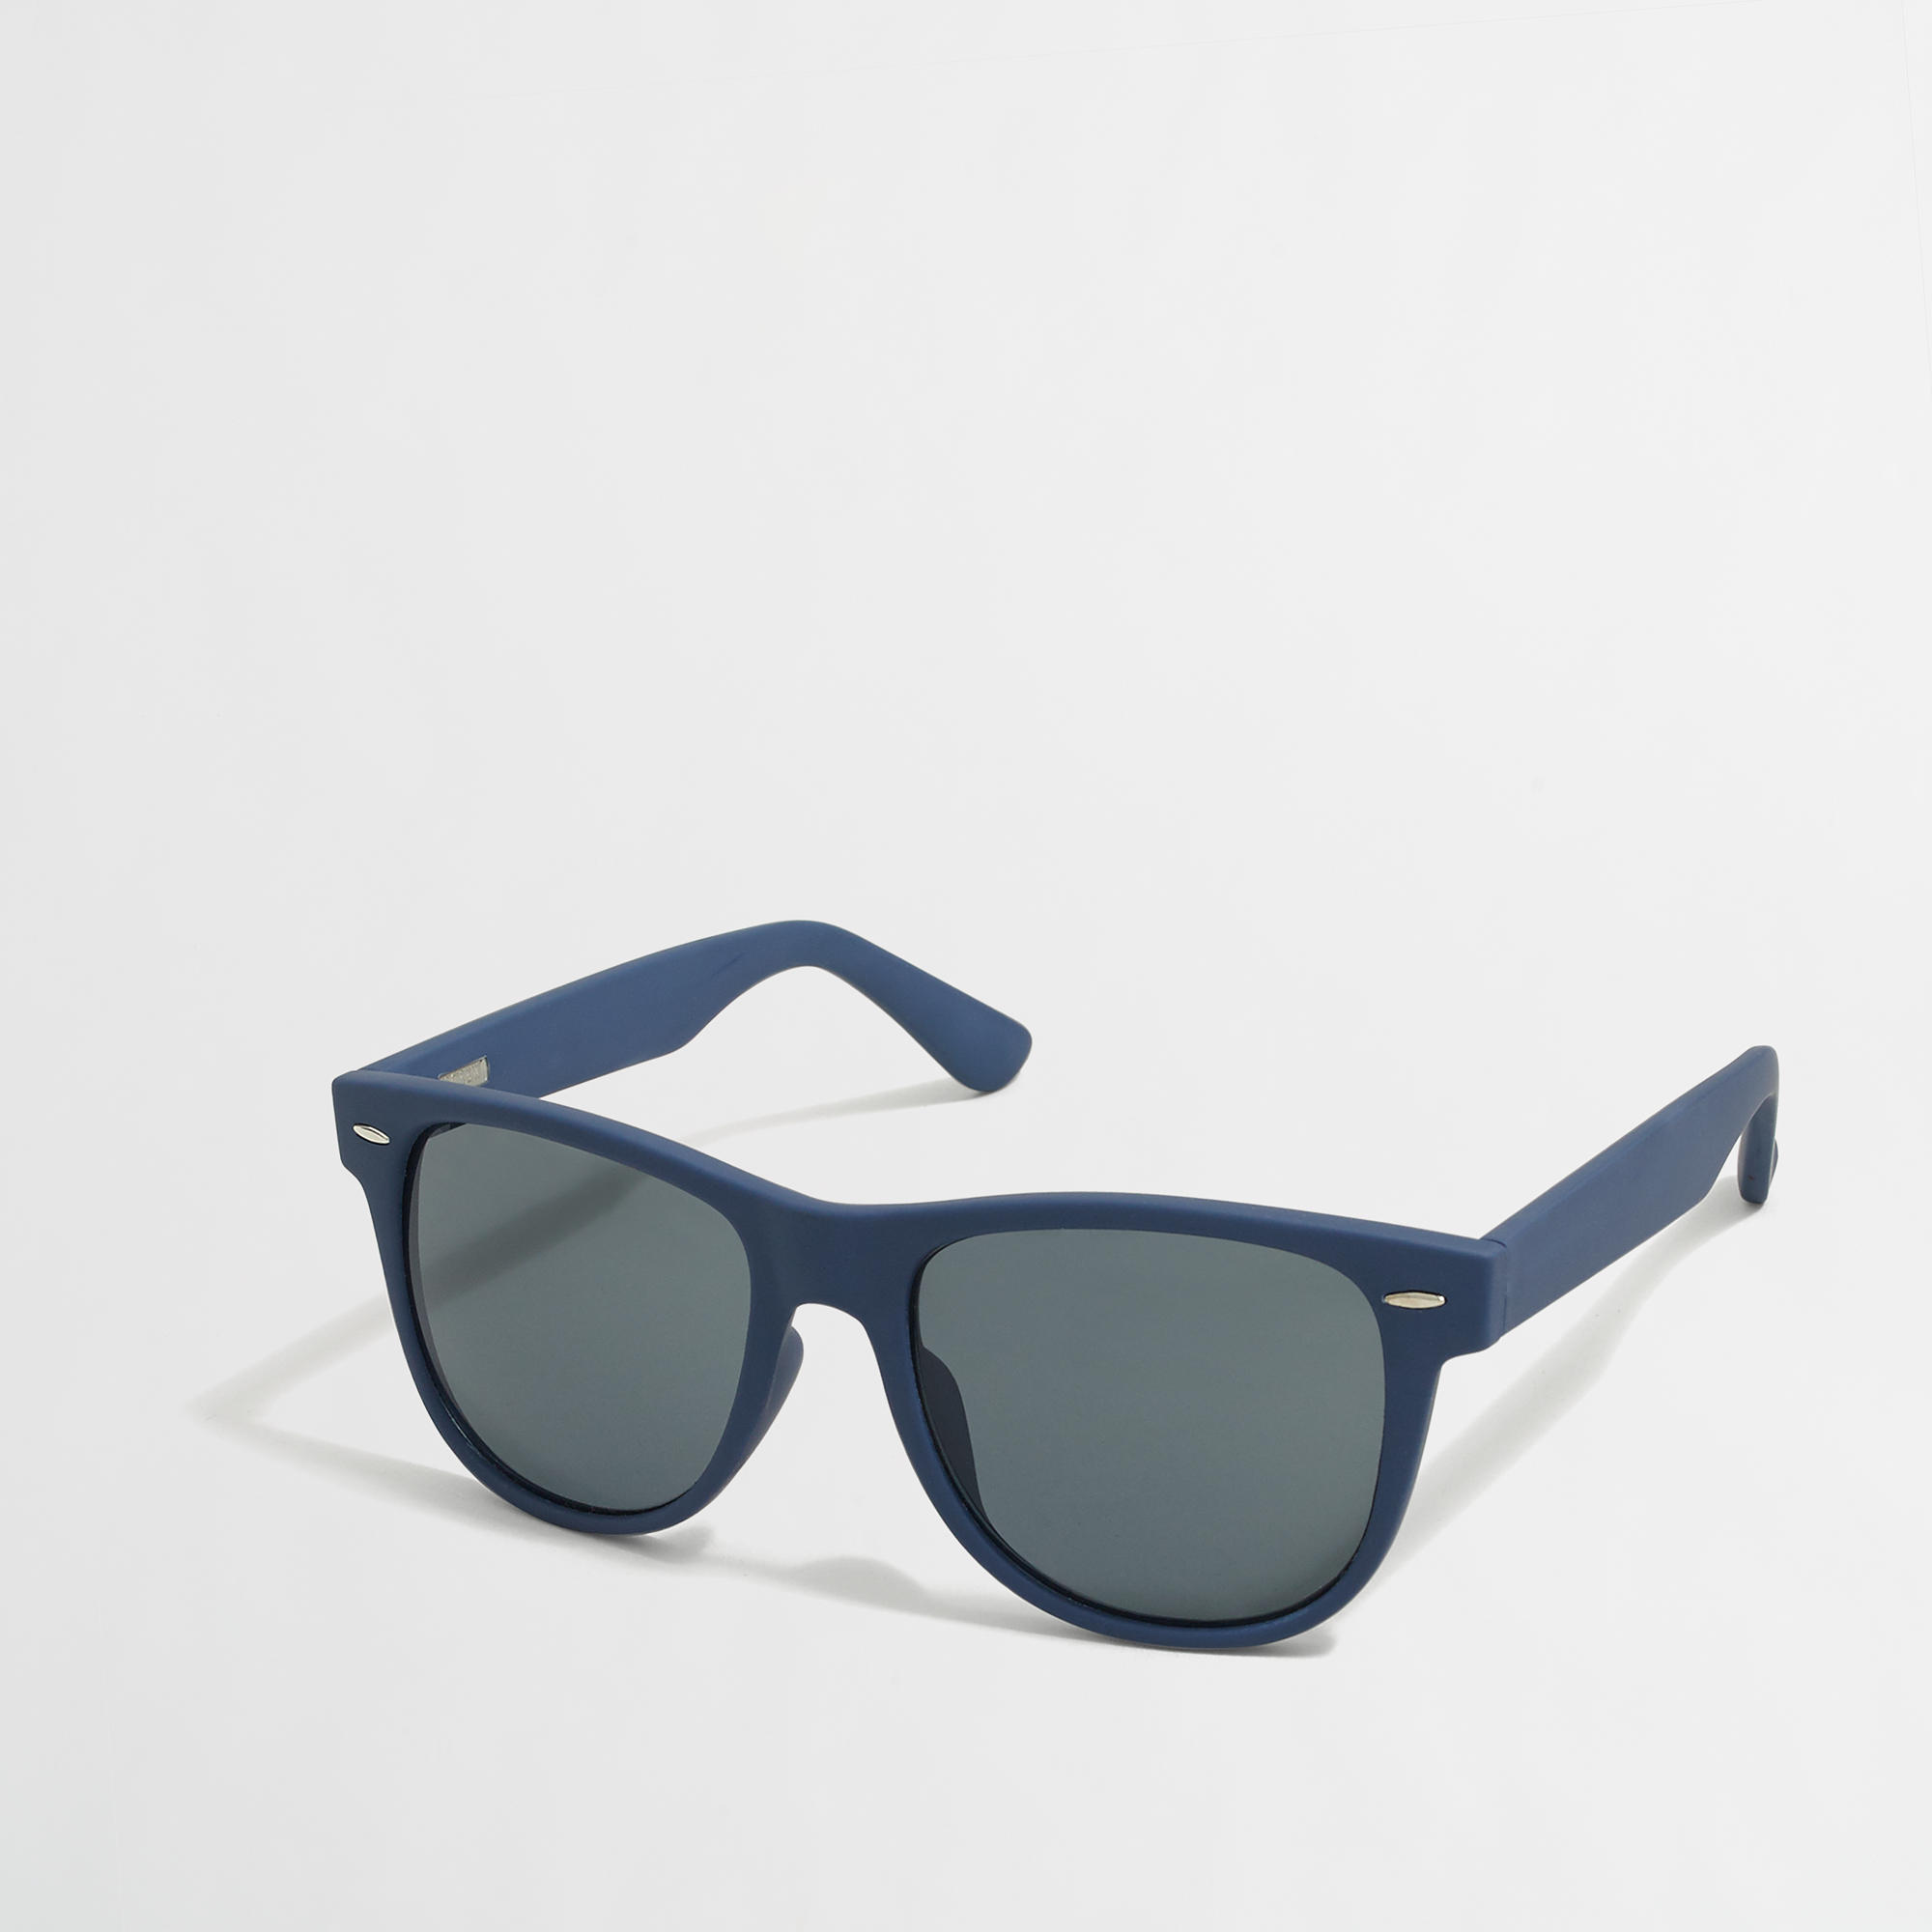 J.Crew Factory Mens Classic Frame Sunglasses in Sapphire